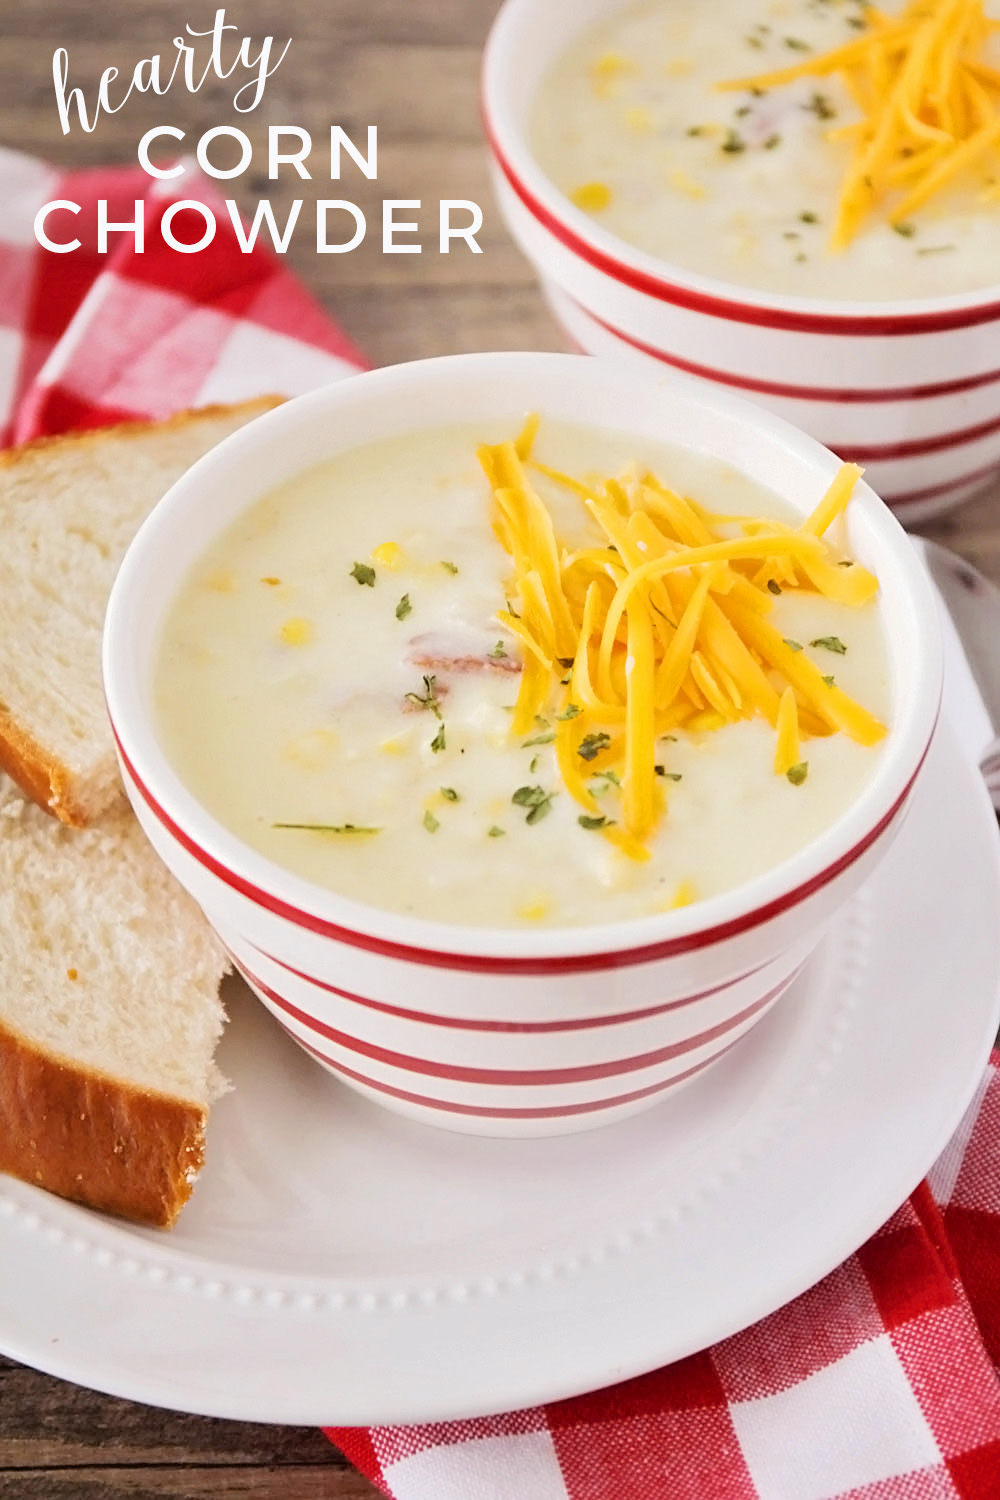 This savory and hearty corn chowder is so delicious and perfect for a chilly evening!